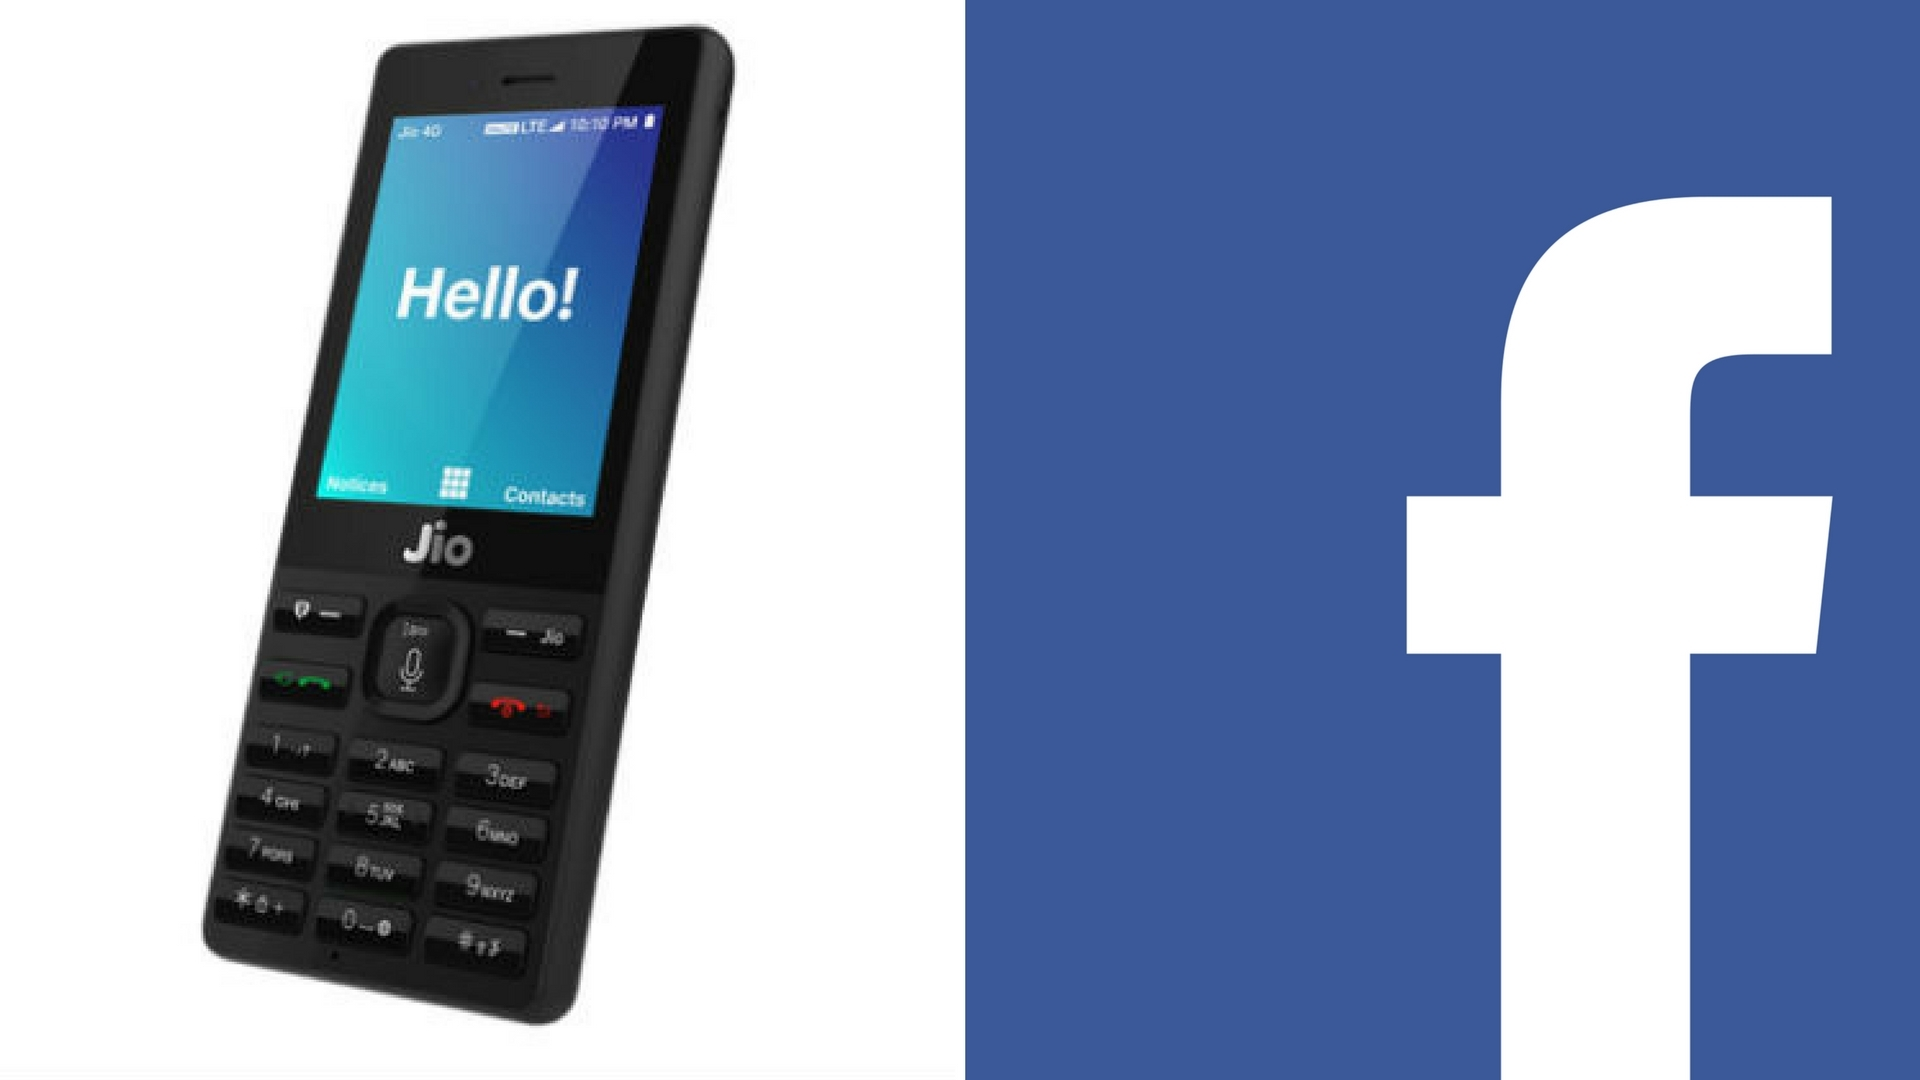 Reliances Jiophone Finally Gets Facebook No Sign Of Whatsapp Yet